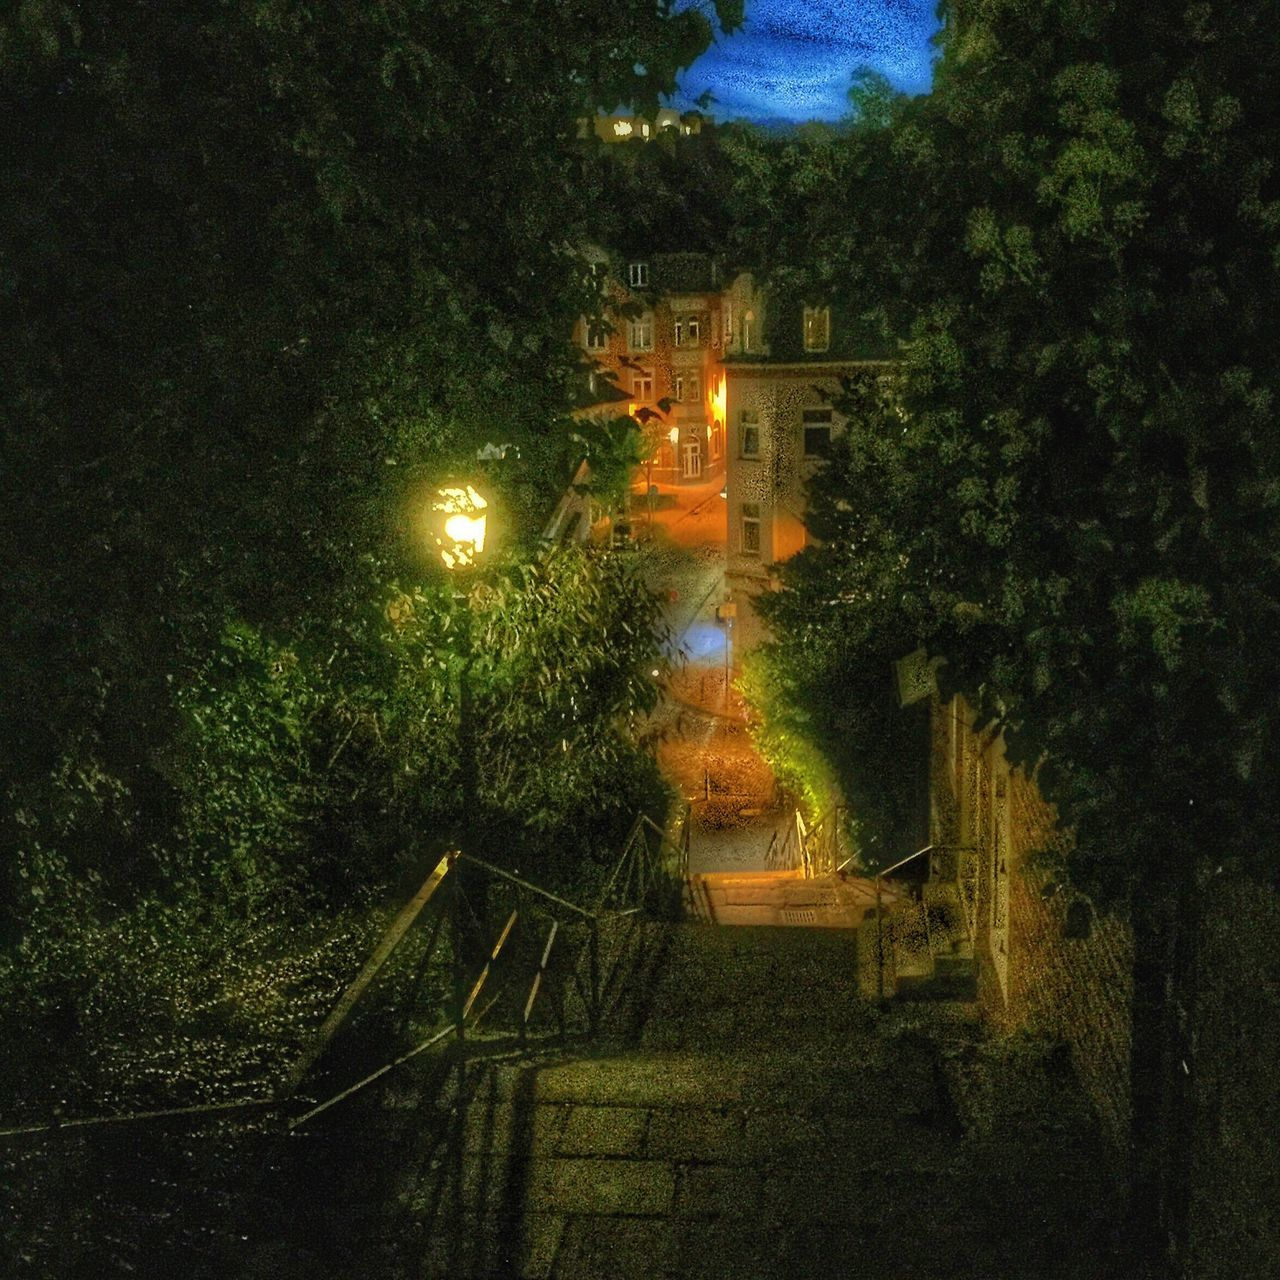 steps, night, steps and staircases, staircase, illuminated, tree, outdoors, no people, stairs, nature